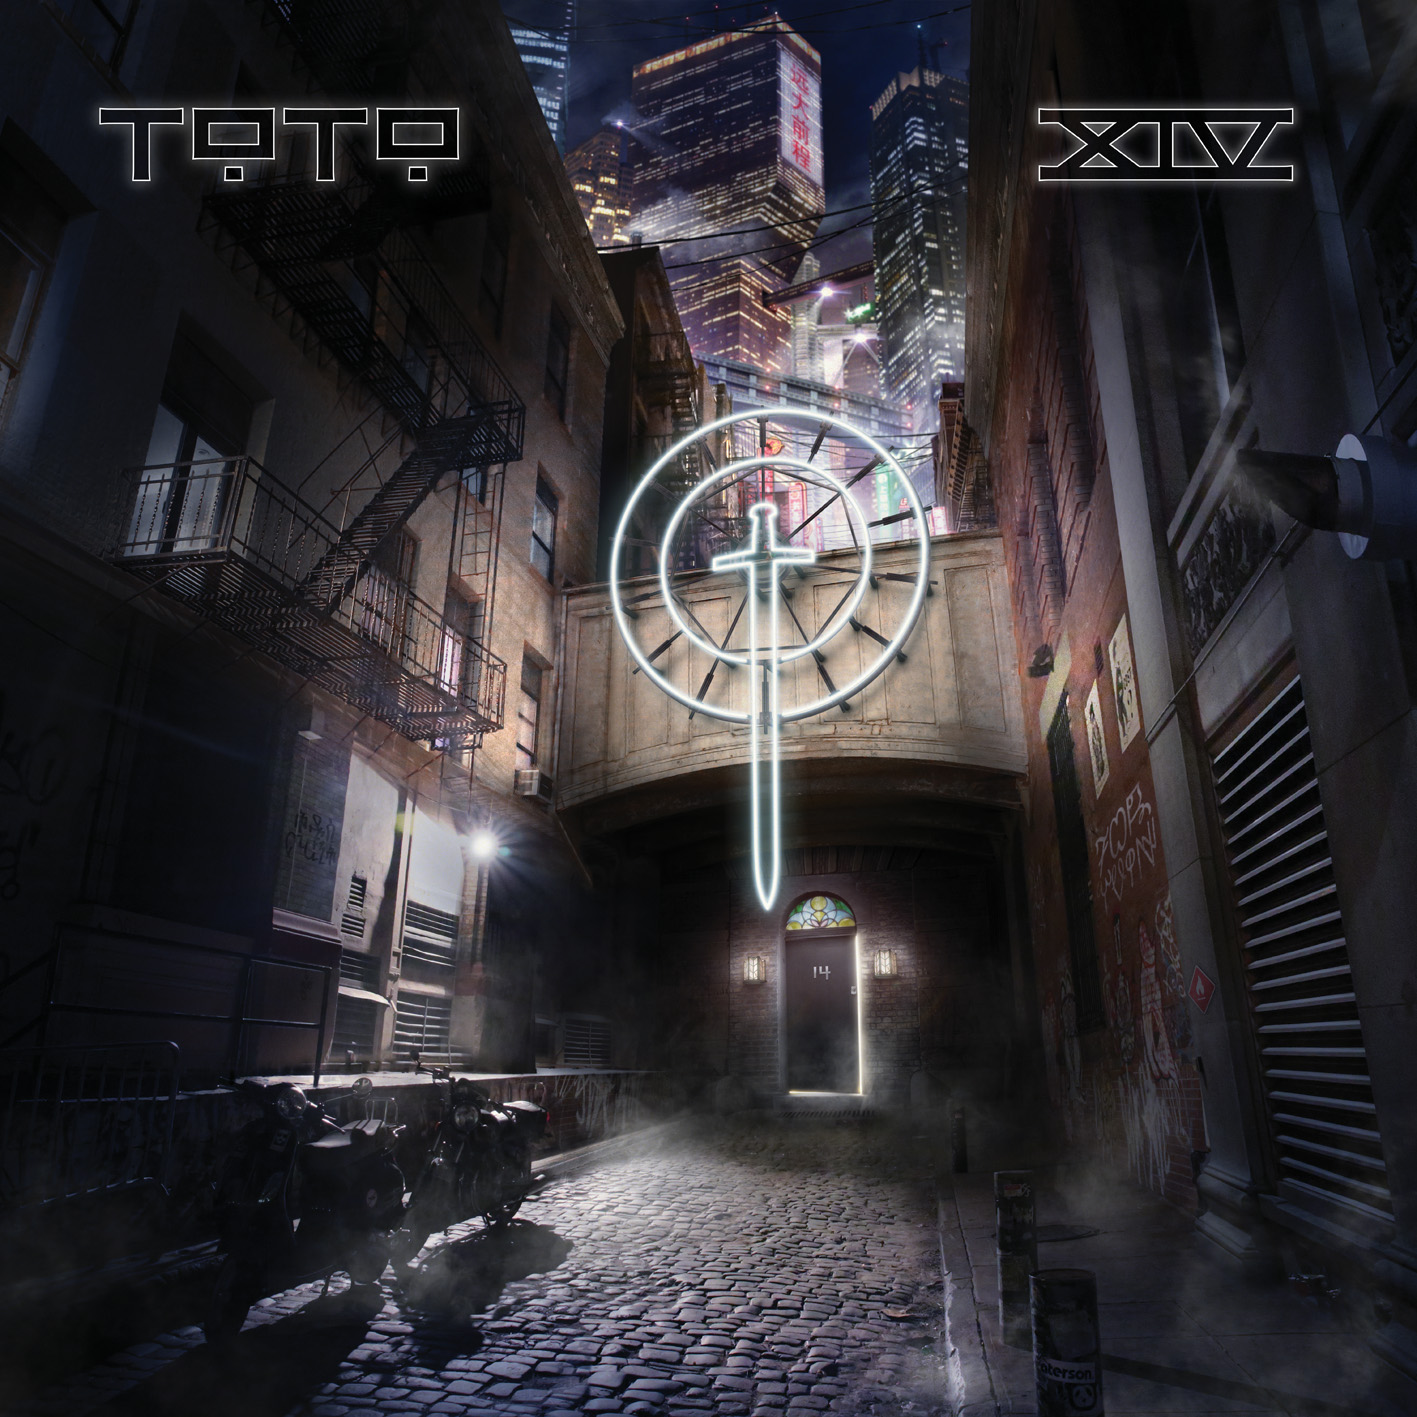 Toto - XIV (2015) from Frontiers Records (Universal Music)